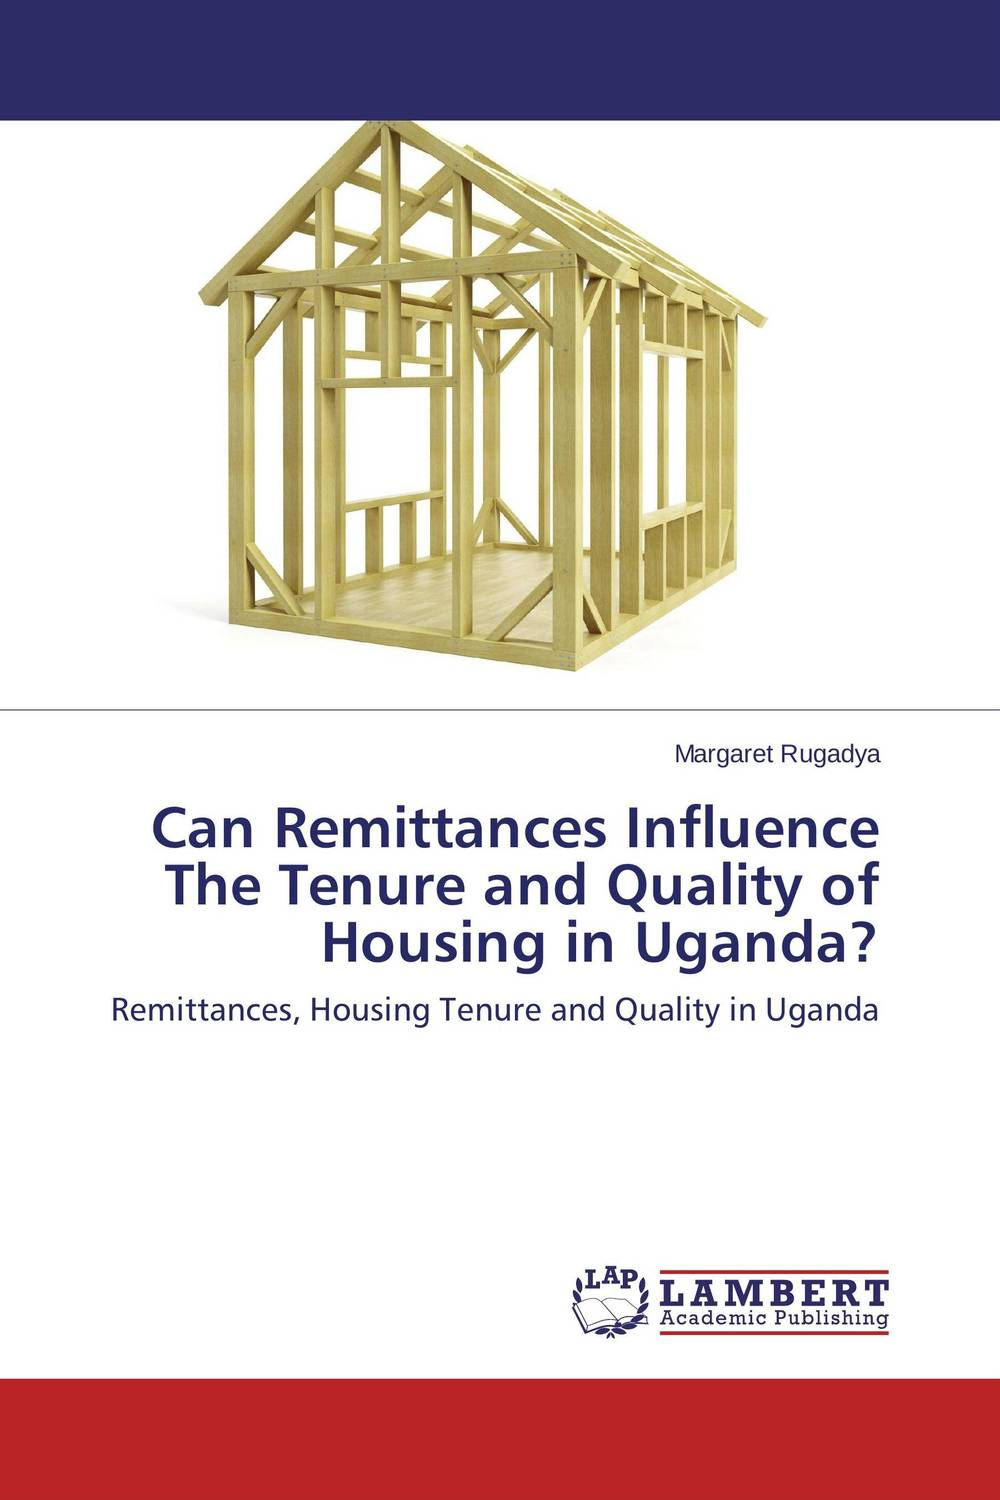 Can Remittances Influence The Tenure and Quality of Housing in Uganda? land tenure housing and low income earners